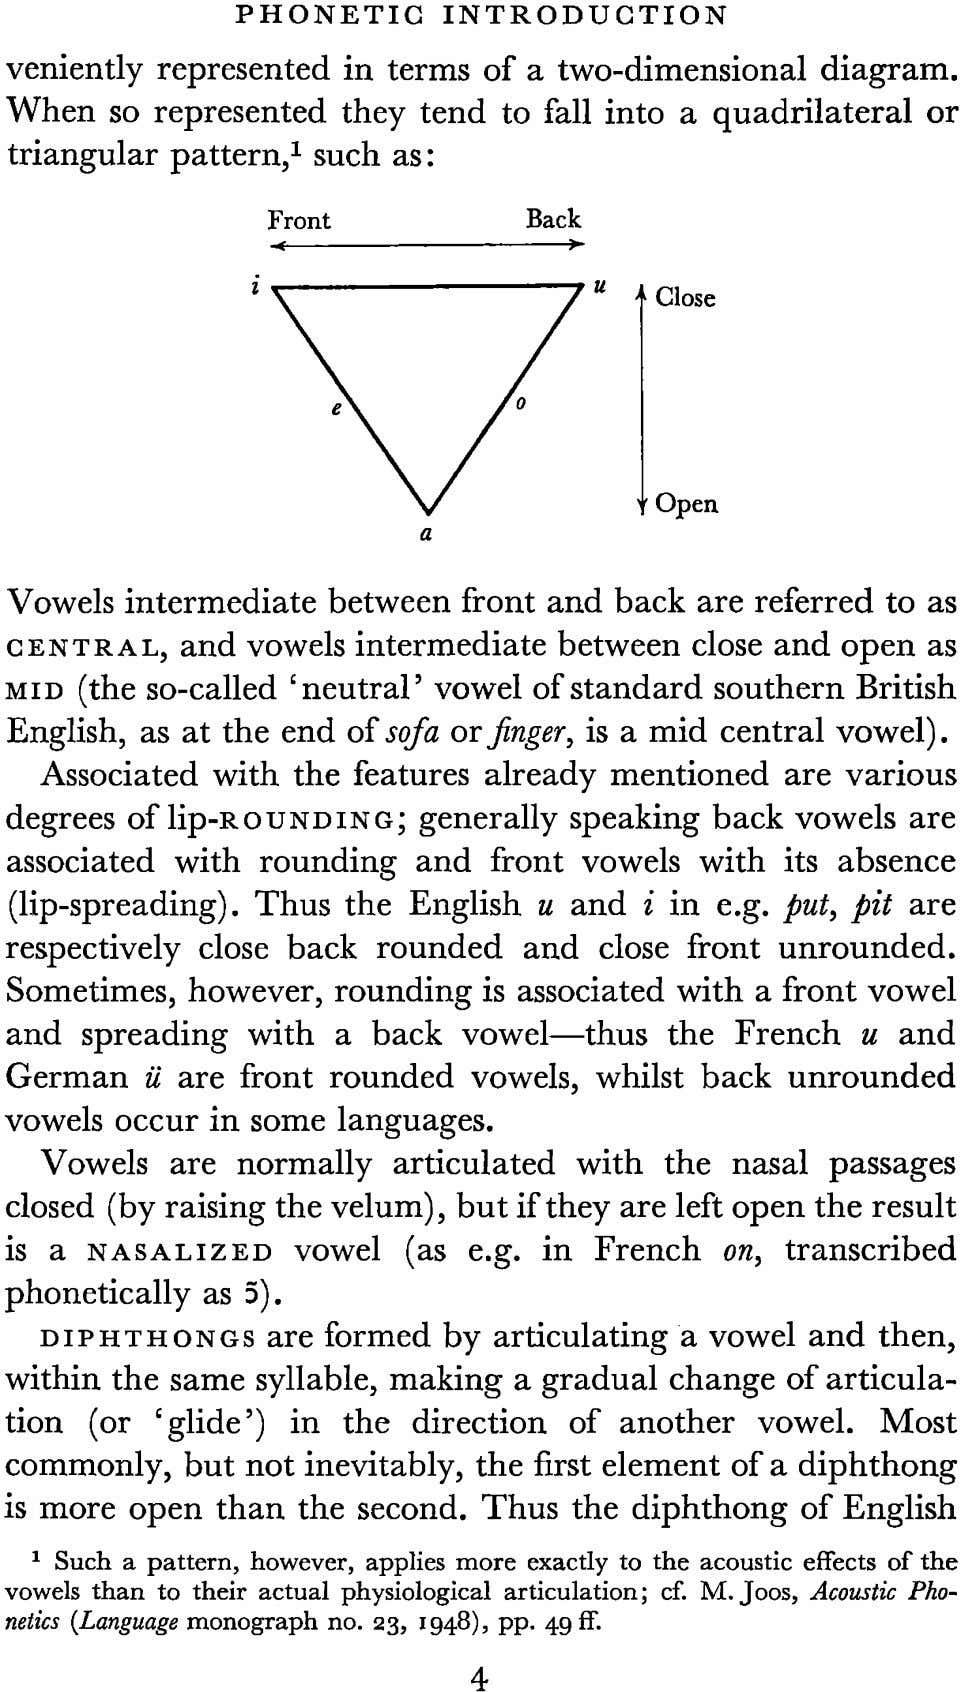 PHONETIC INTRODUCTION veniently represented in terms of a two-dimensional diagram. When so represented they tend